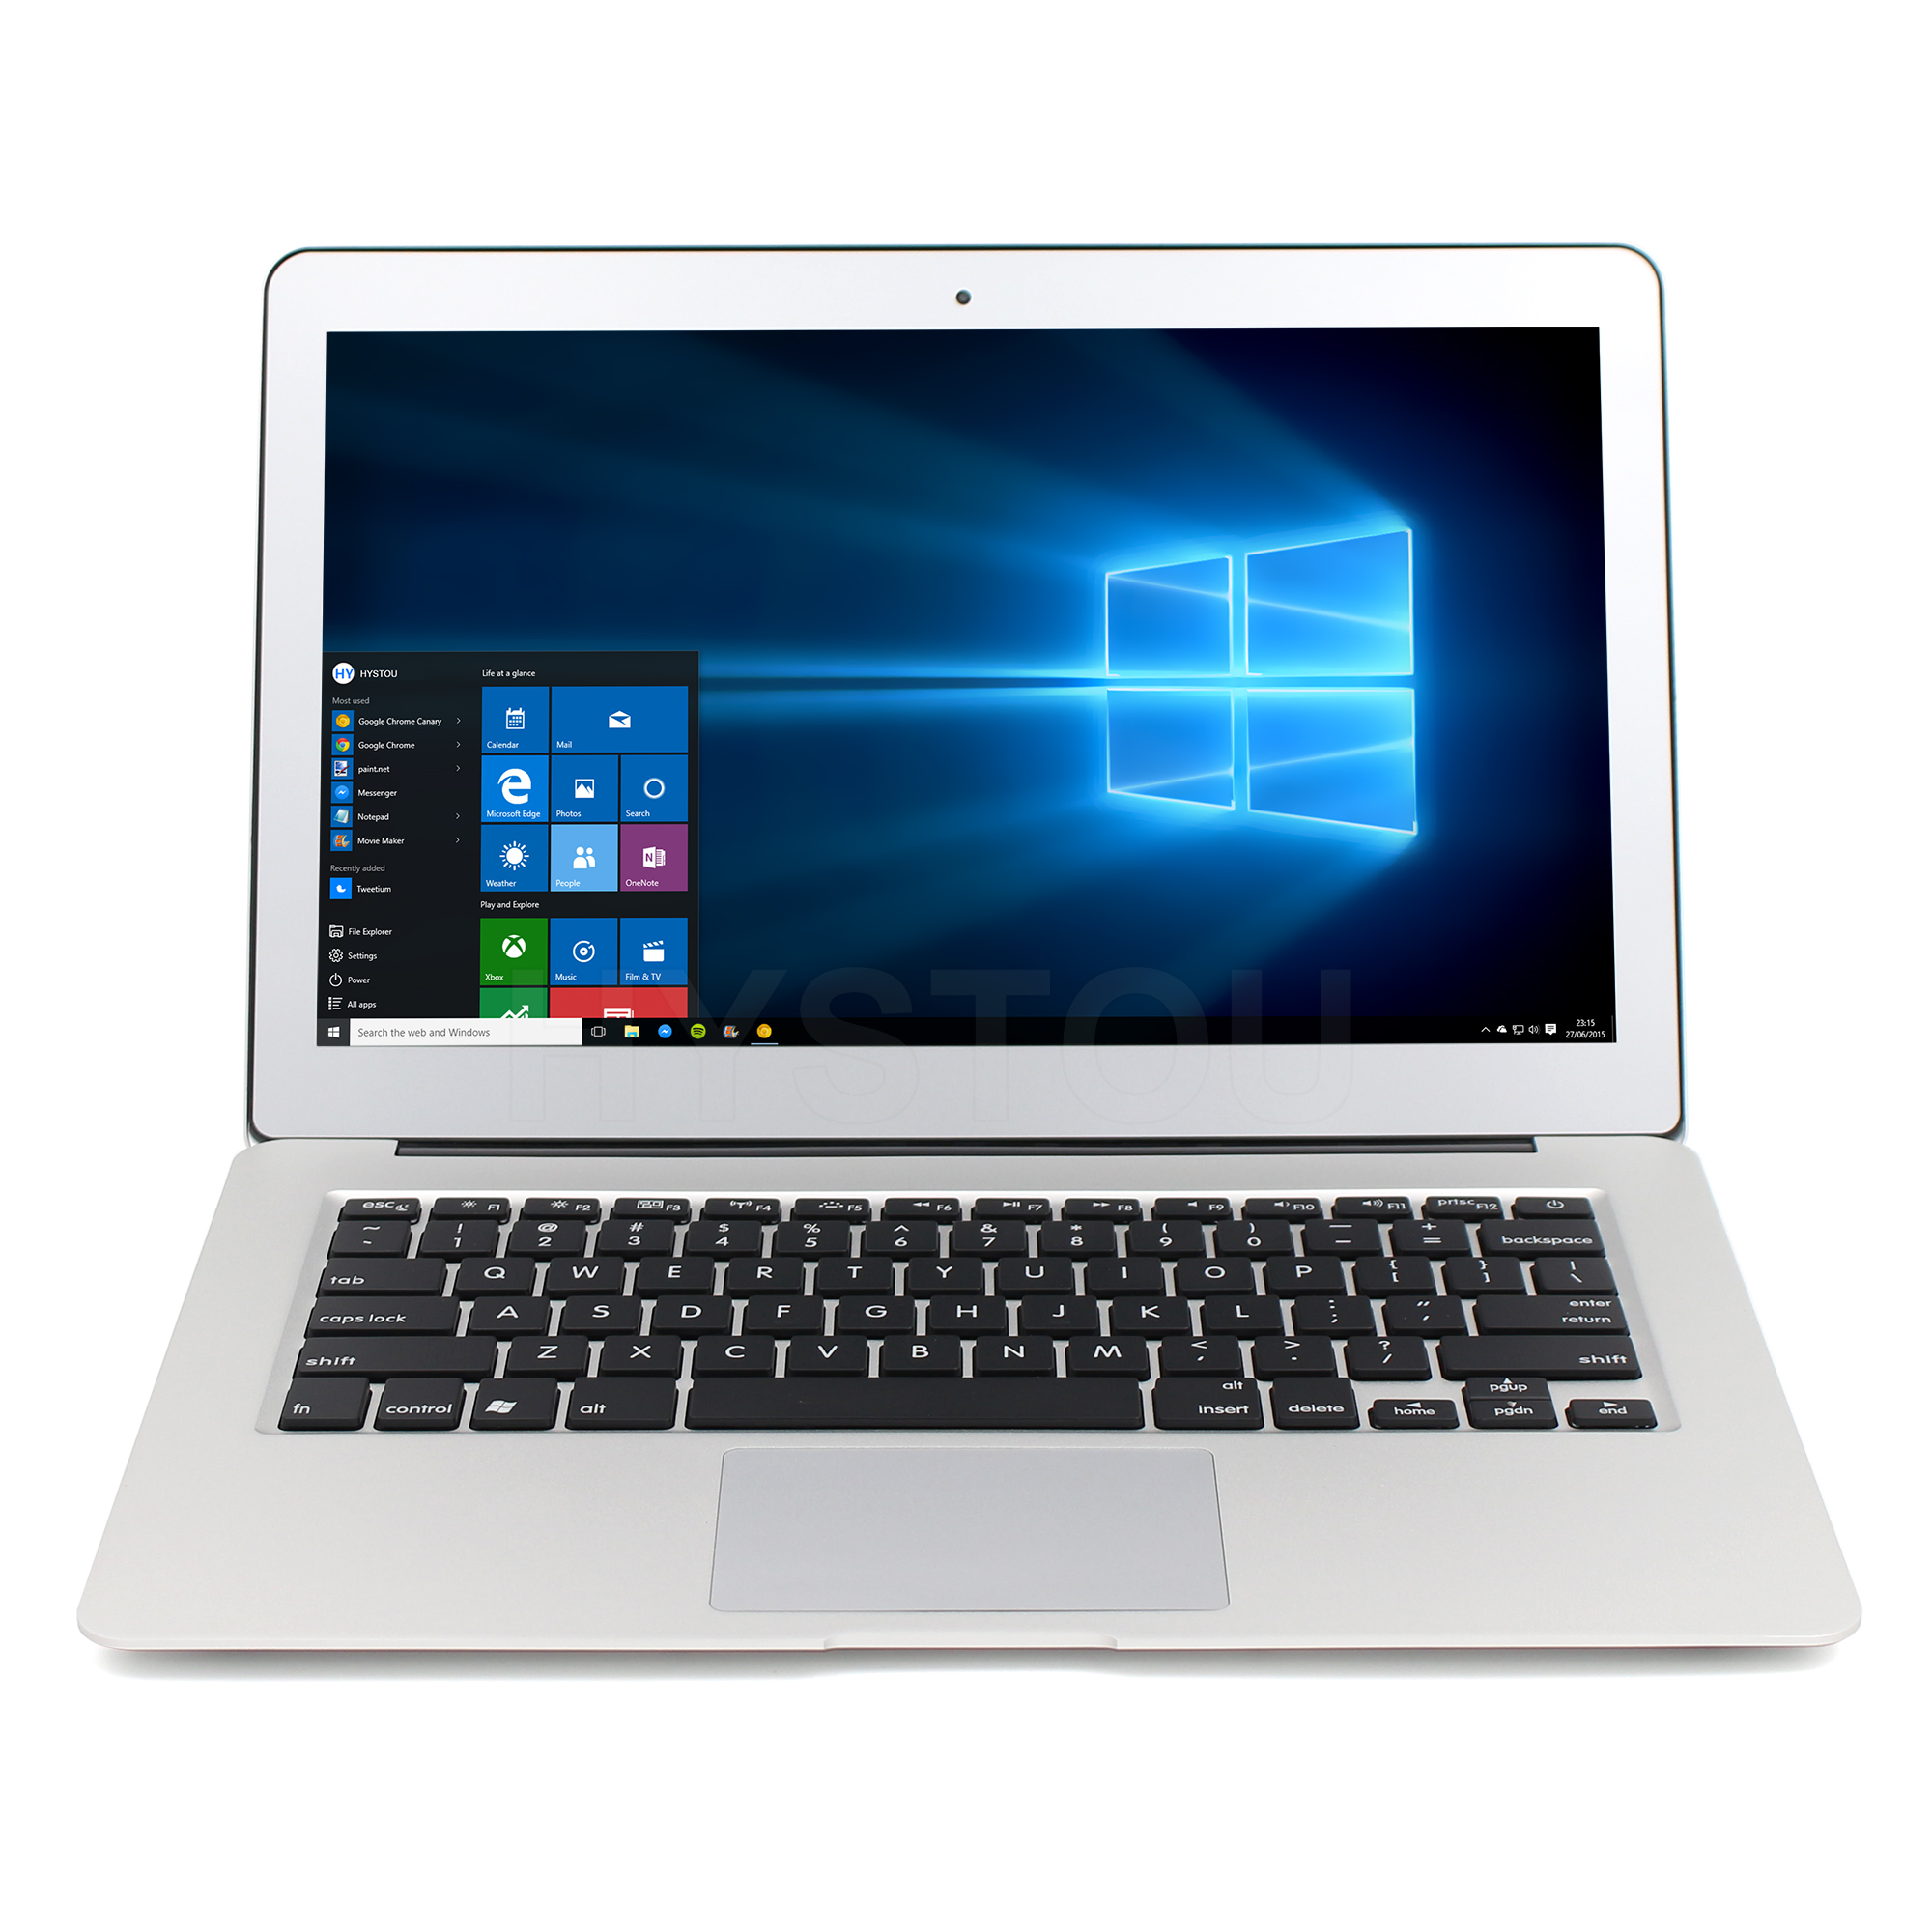 HYSTOU i5-5200U Laptop (4G+128G Licensed)